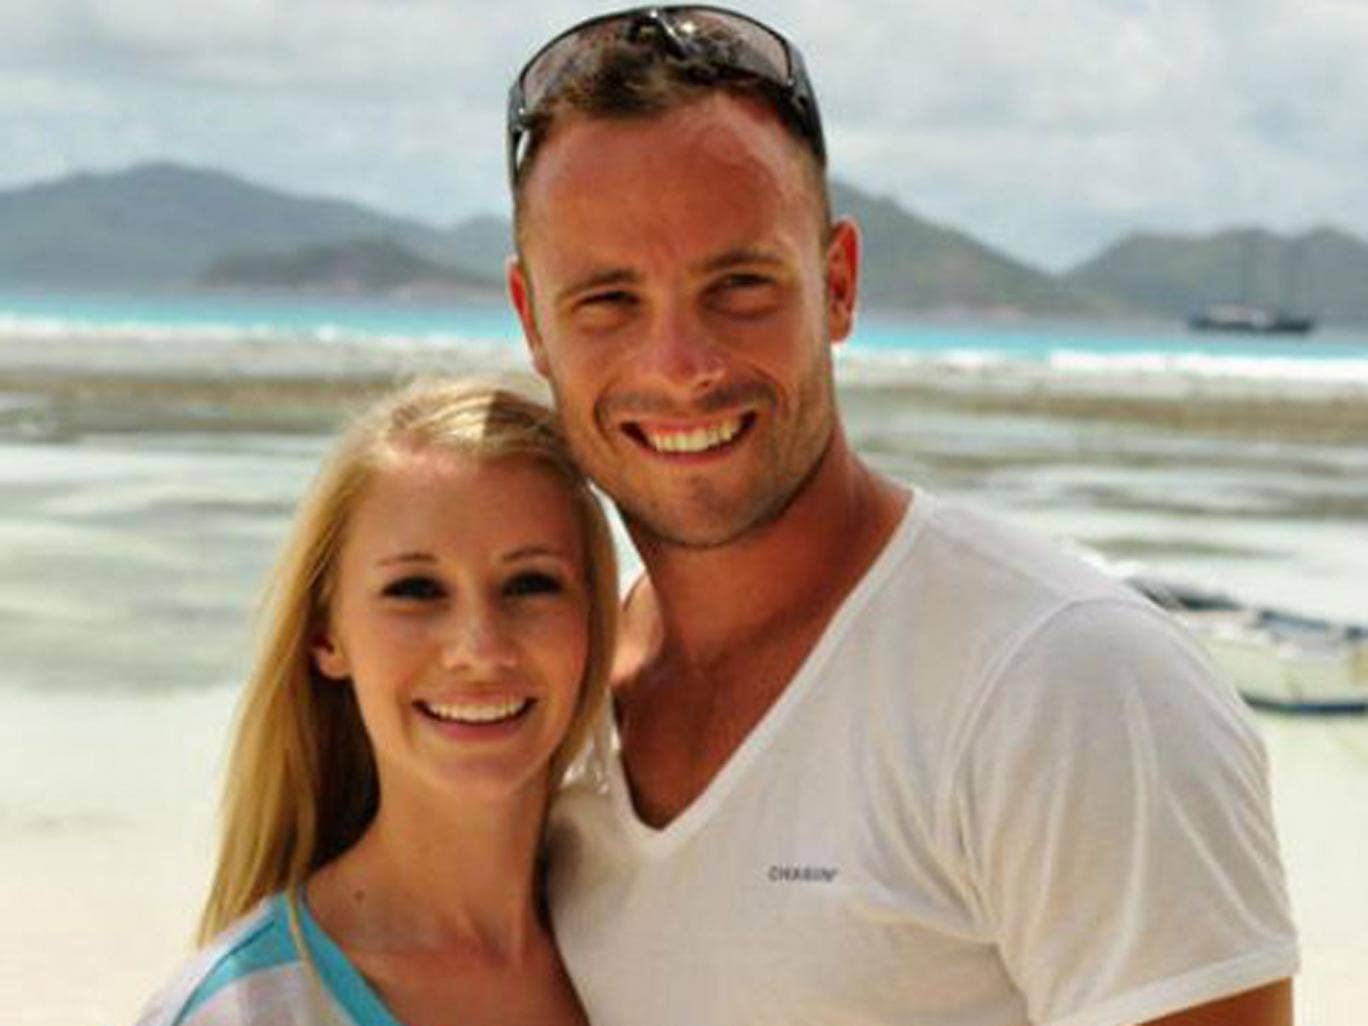 Oscar Pistorius and Samantha Taylor